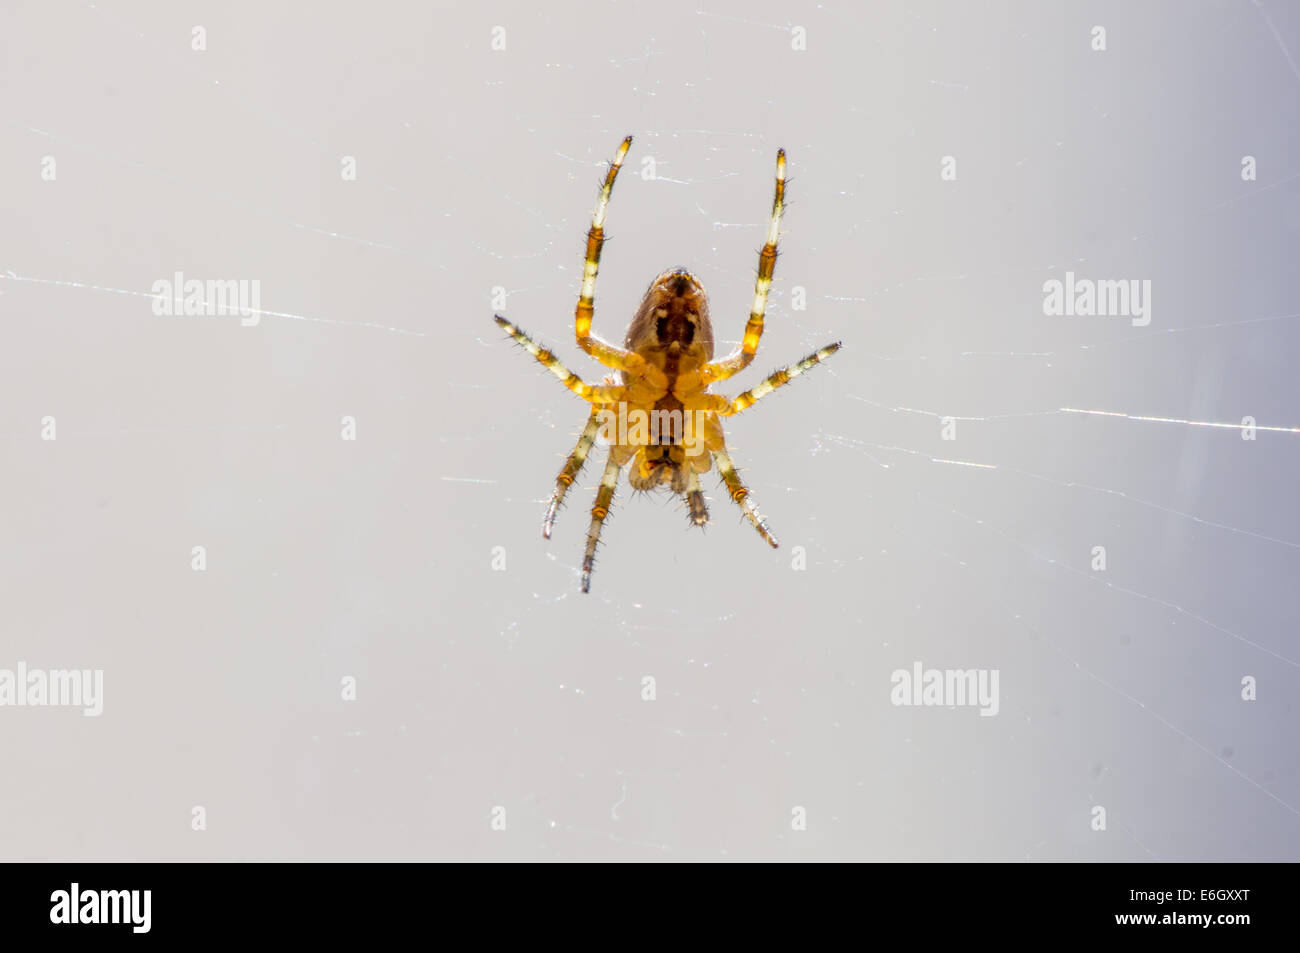 Araneus diadematus. Underneath a Common UK spider waiting in its web back lit by the sun - Stock Image